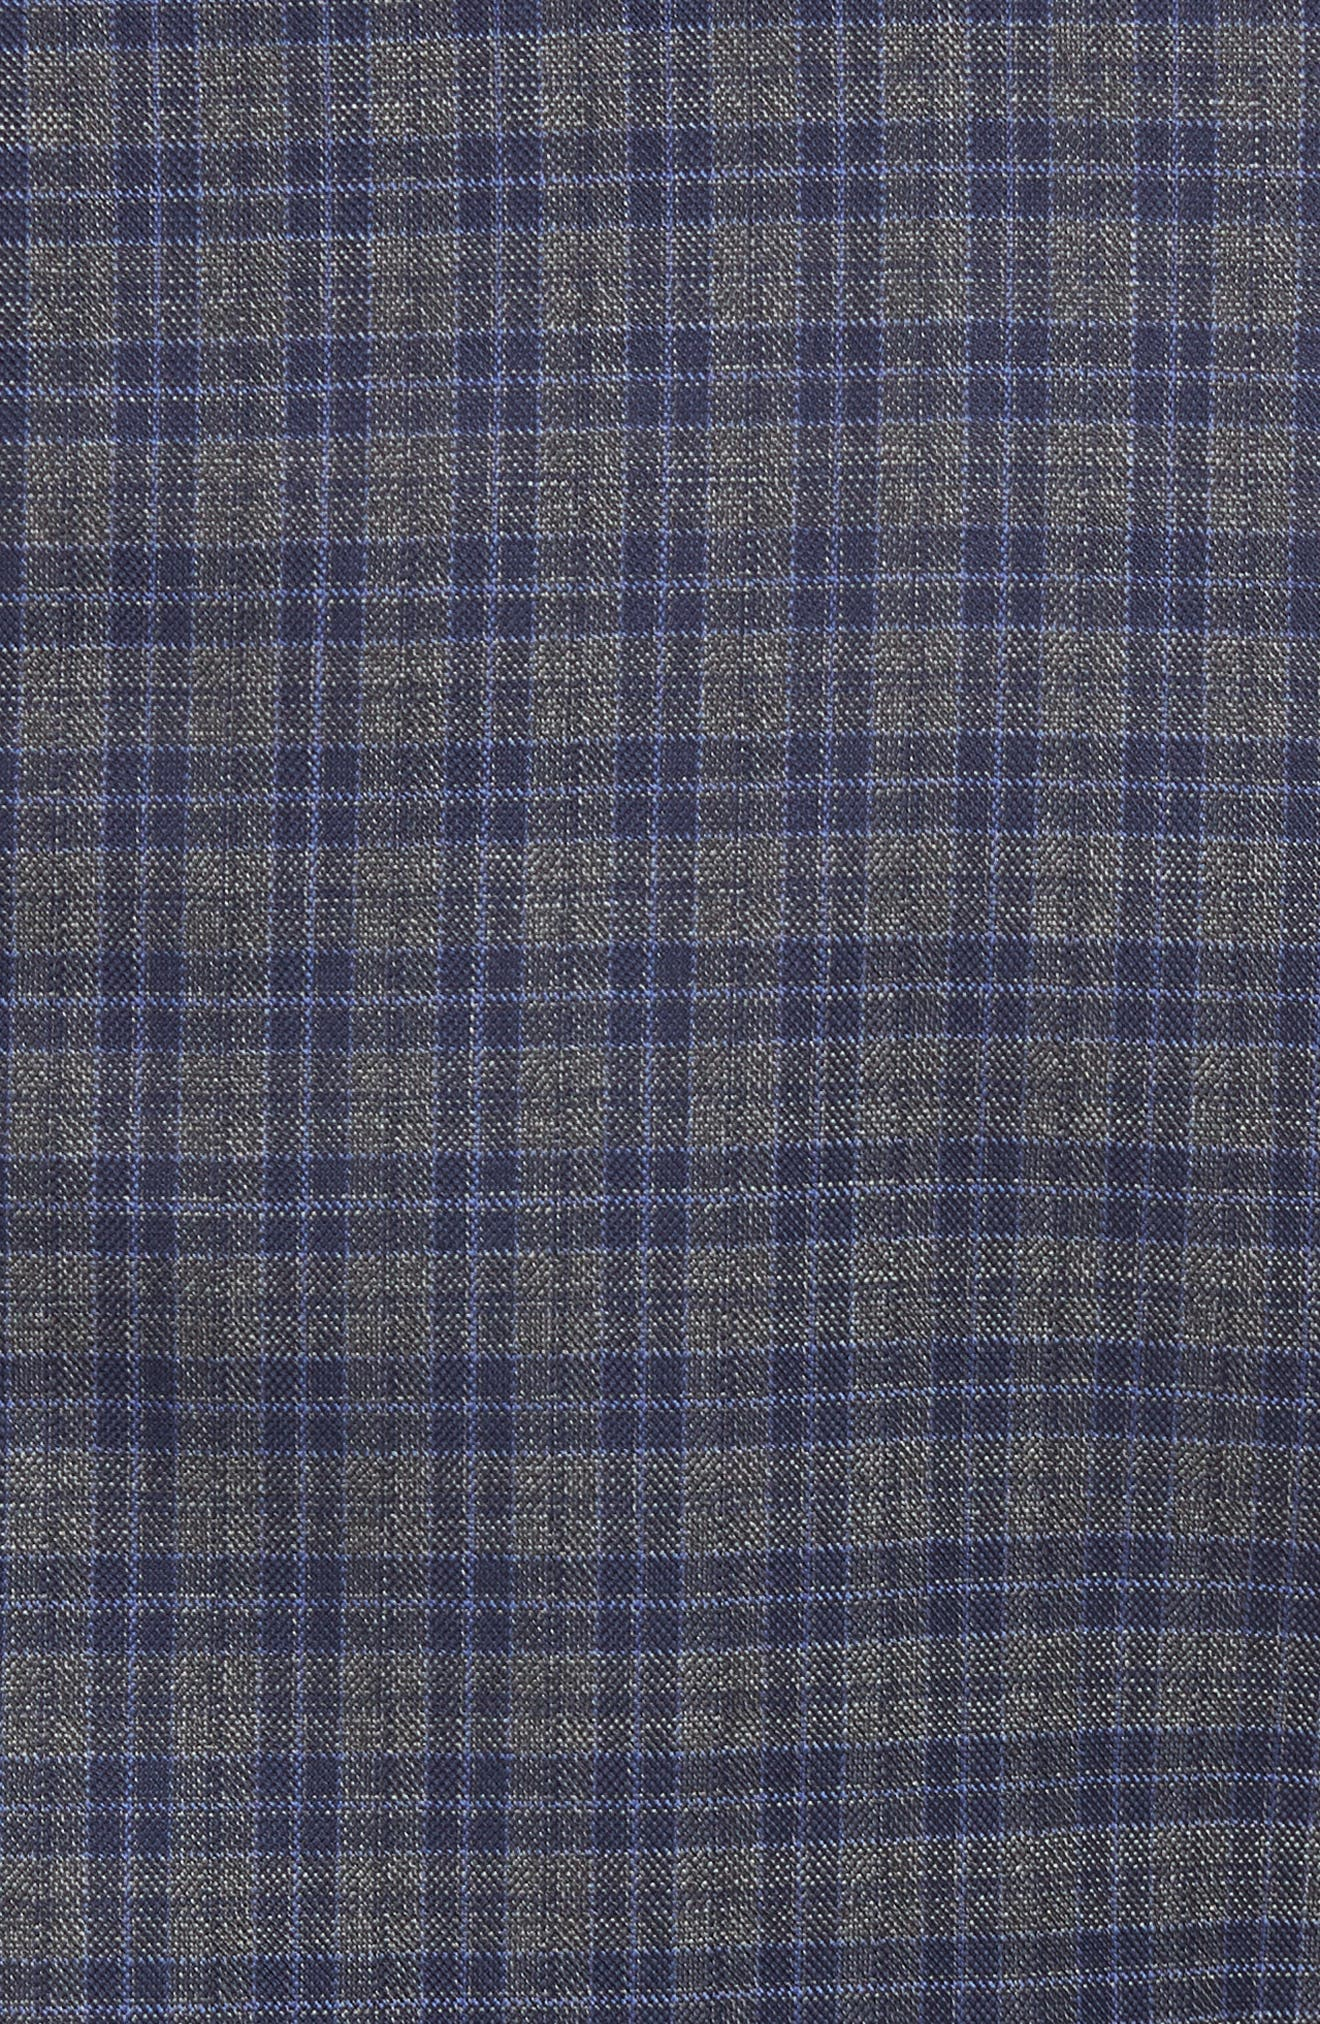 Classic Fit Check Wool Sport Coat,                             Alternate thumbnail 5, color,                             Grey/Blue